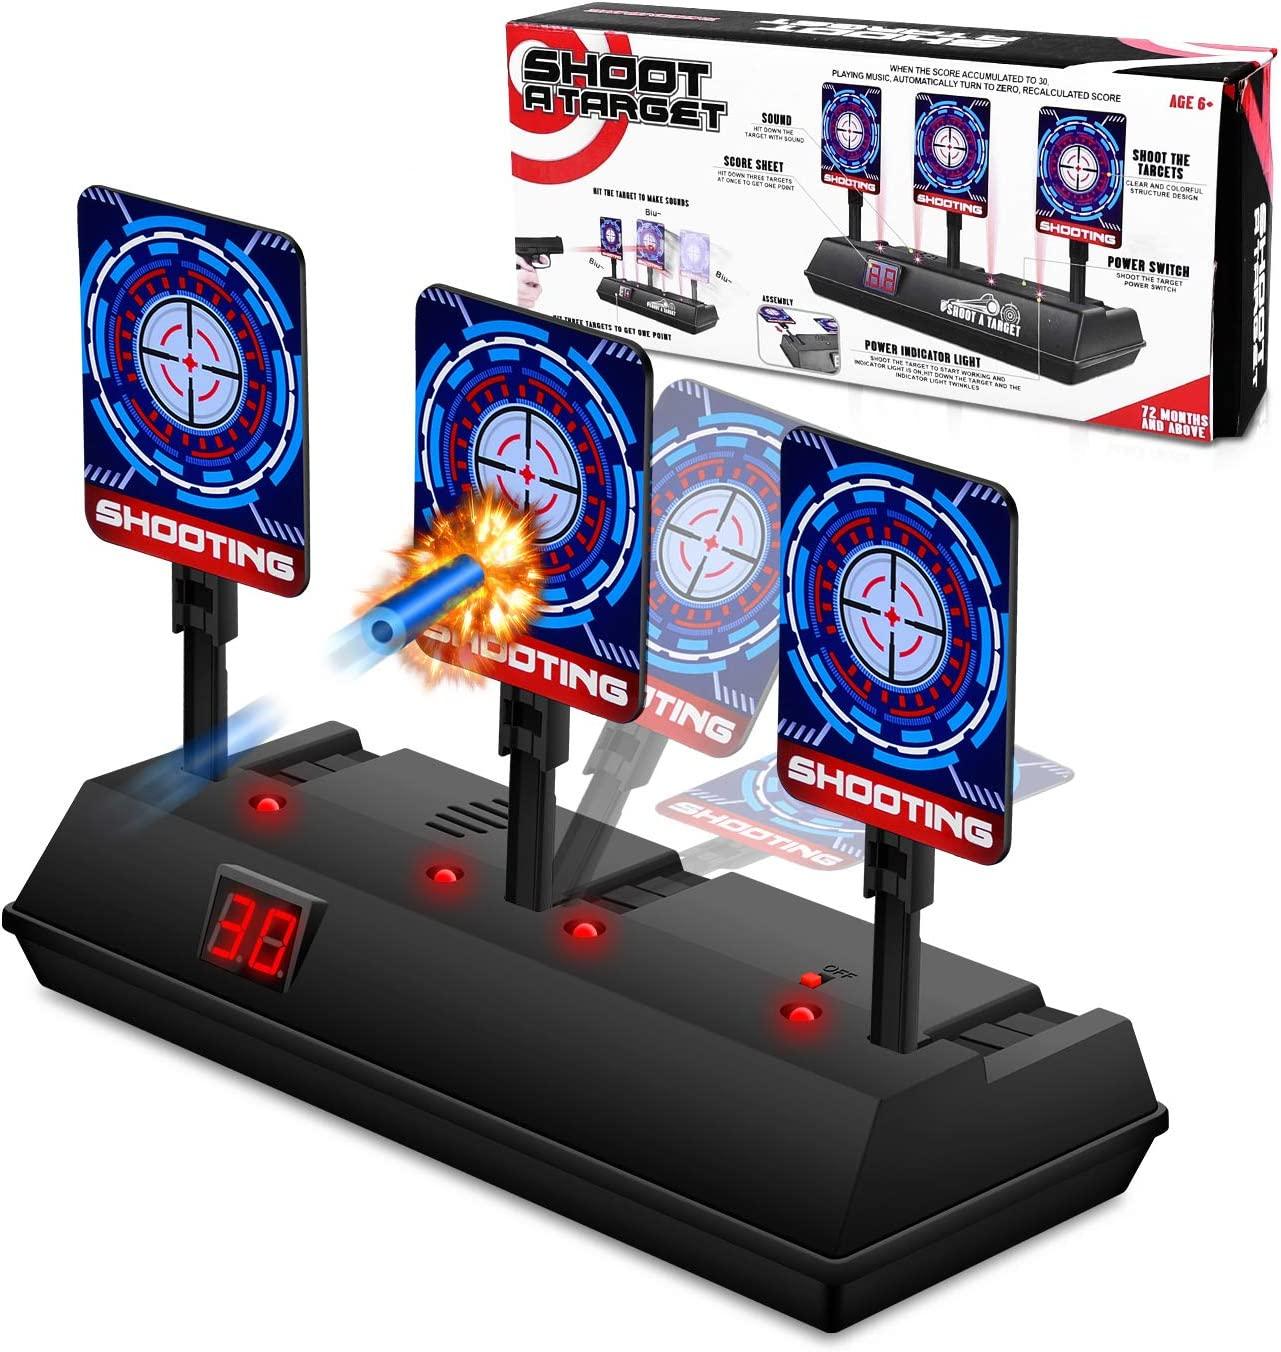 Auto Reset Digital Scoring Nerf Target Practice Toys for 5 6 7 8 9 10 Year Old Boys Xmas Gifts Black Growsland Electronic Shooting Target for Nerf Guns